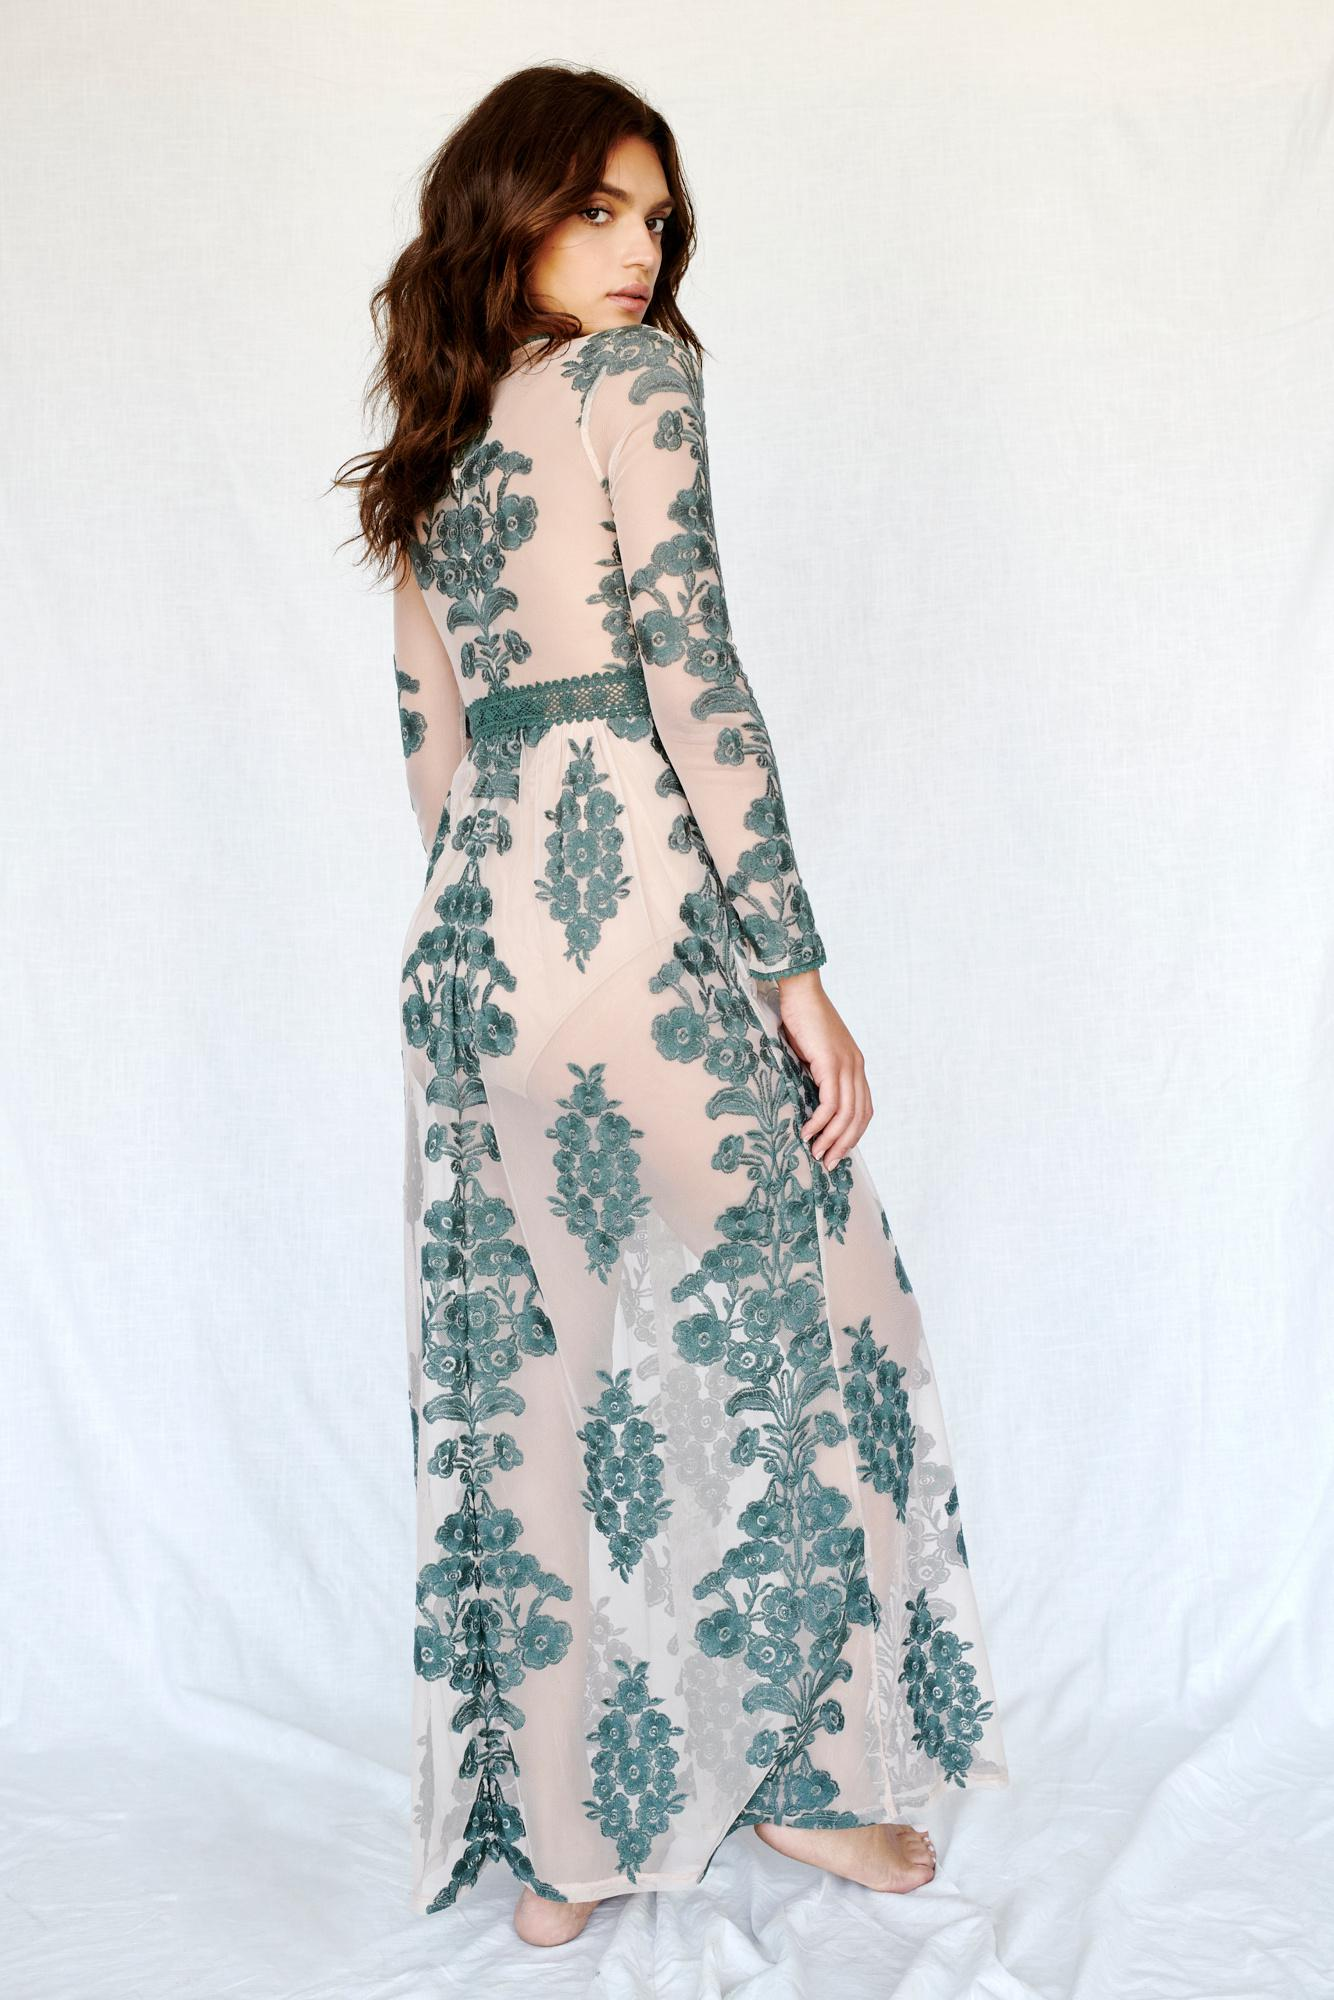 702a43eb7f3 Free People Temecula Maxi Dress By For Love   Lemons in Green - Lyst